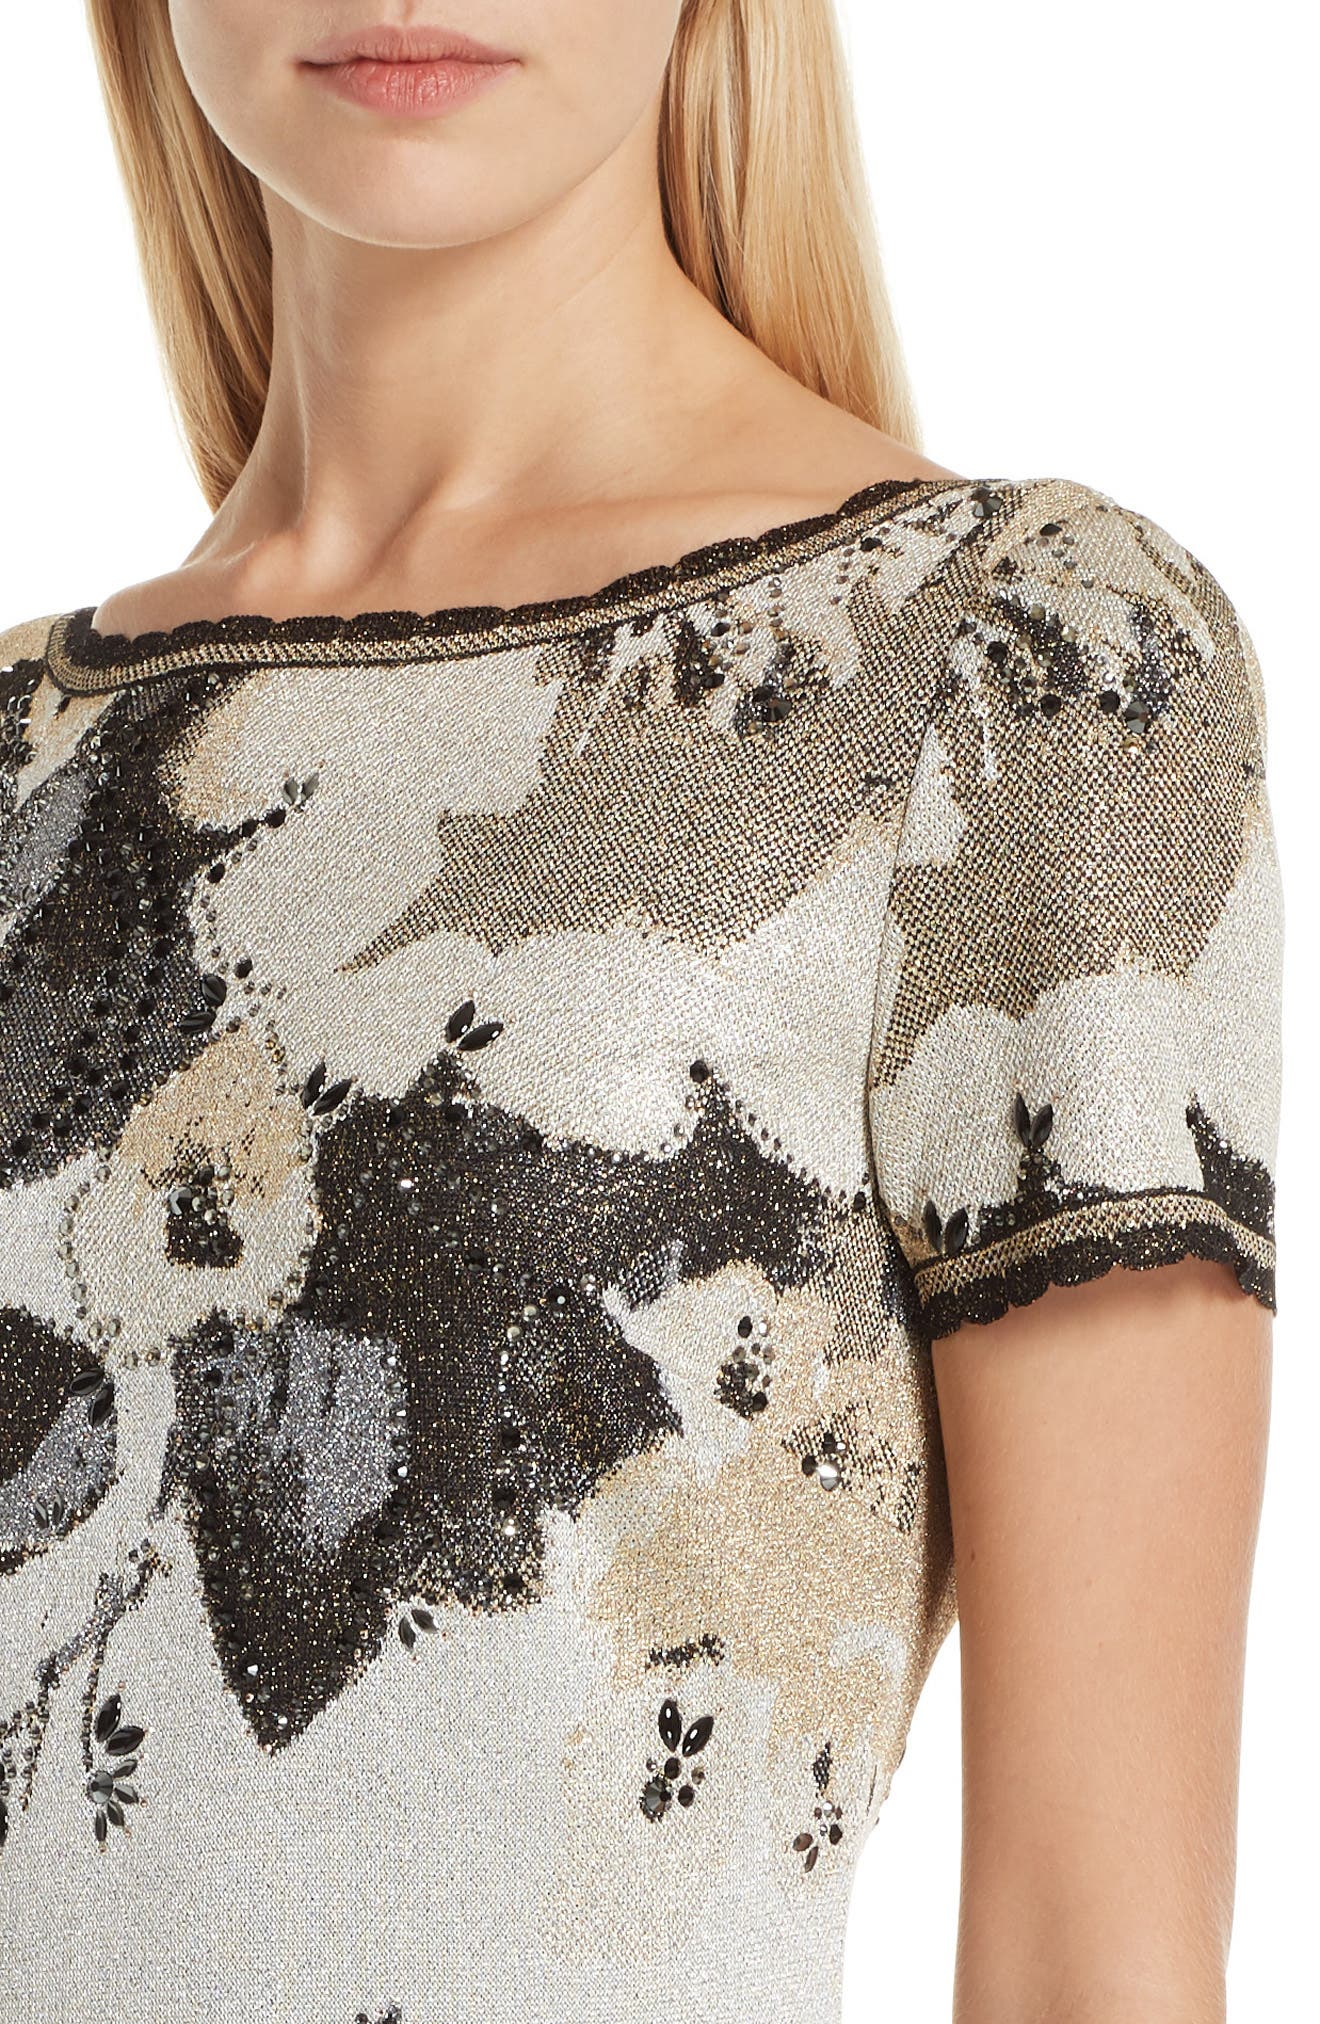 ST. JOHN COLLECTION,                             Gold Leaf Jacquard Knit Dress,                             Alternate thumbnail 4, color,                             METALLIC MULTI